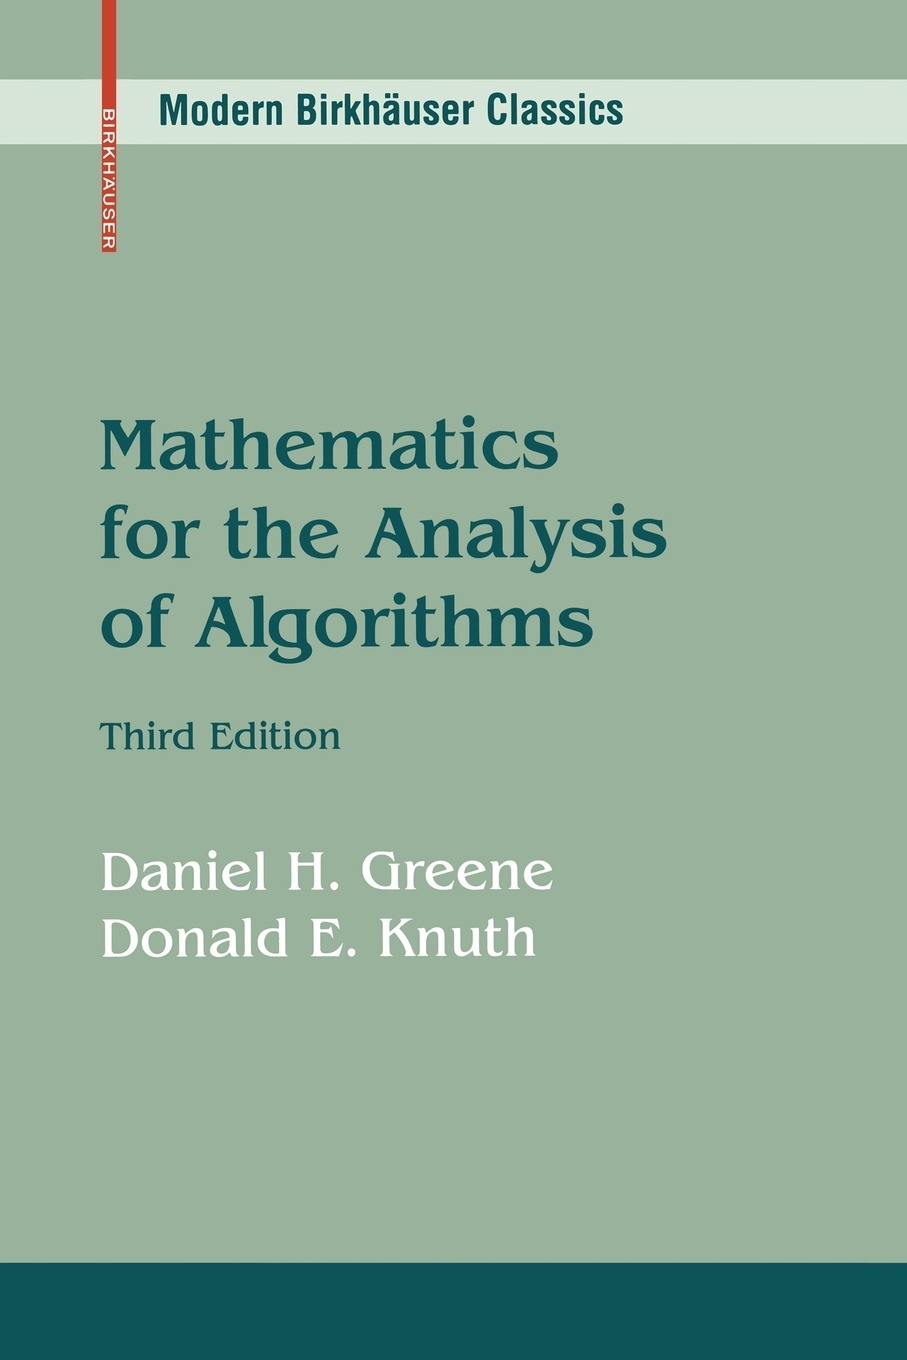 Daniel H. Greene, Donald E. Knuth Mathematics for the Analysis of Algorithms analysis of nifedipine microsphere